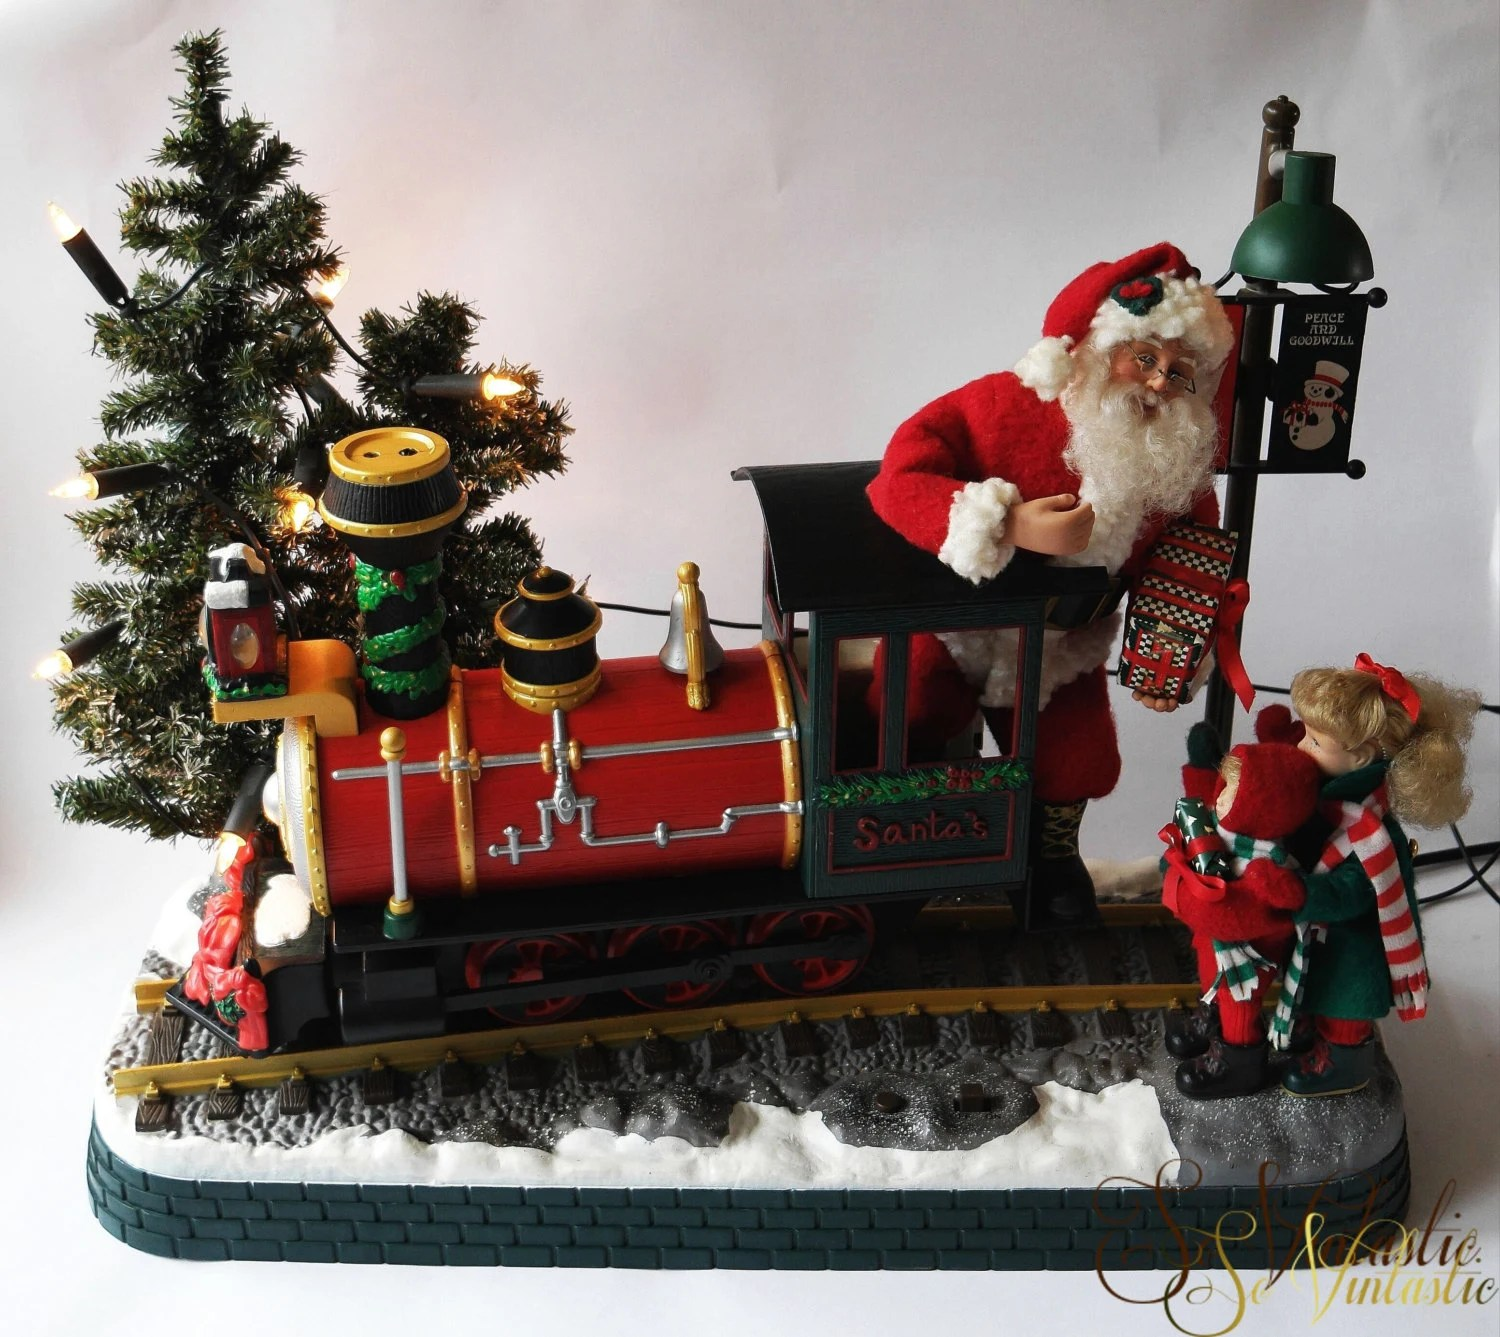 RARE Santas Choo Choo Train By Holiday Creations Large